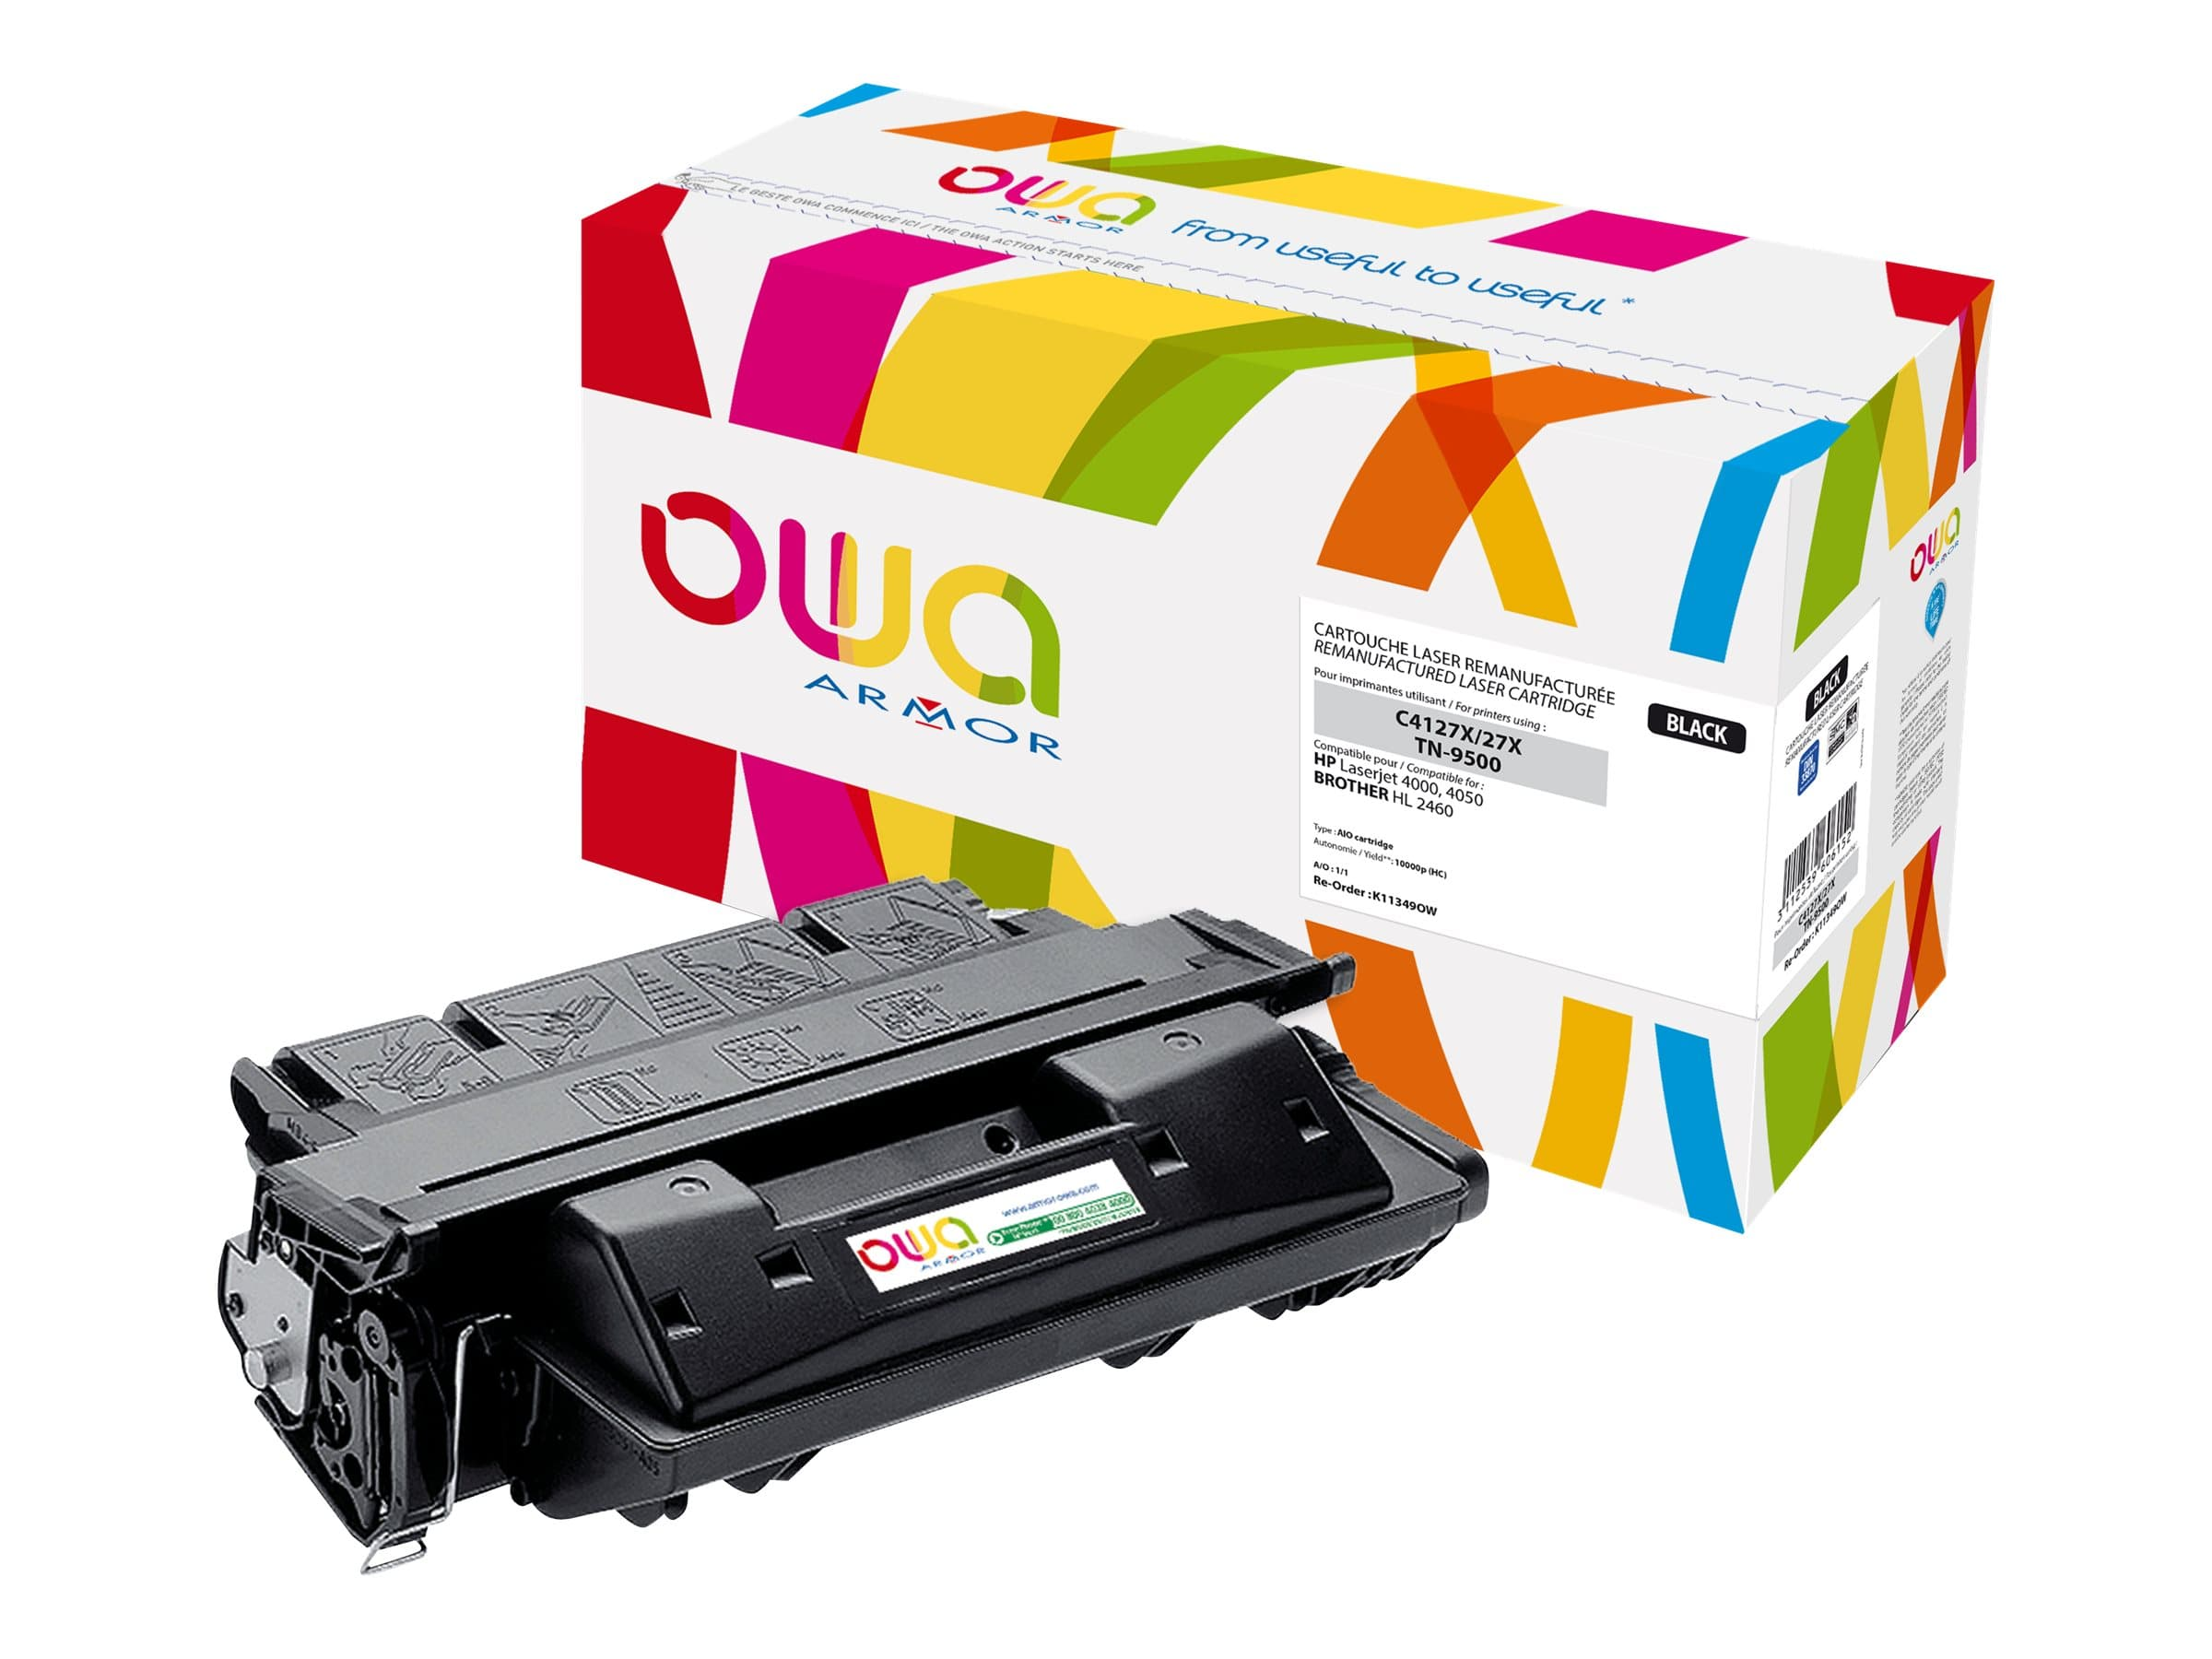 HP 27X / Brother TN9500 - remanufacturé Owa K11349OW - noir - cartouche laser